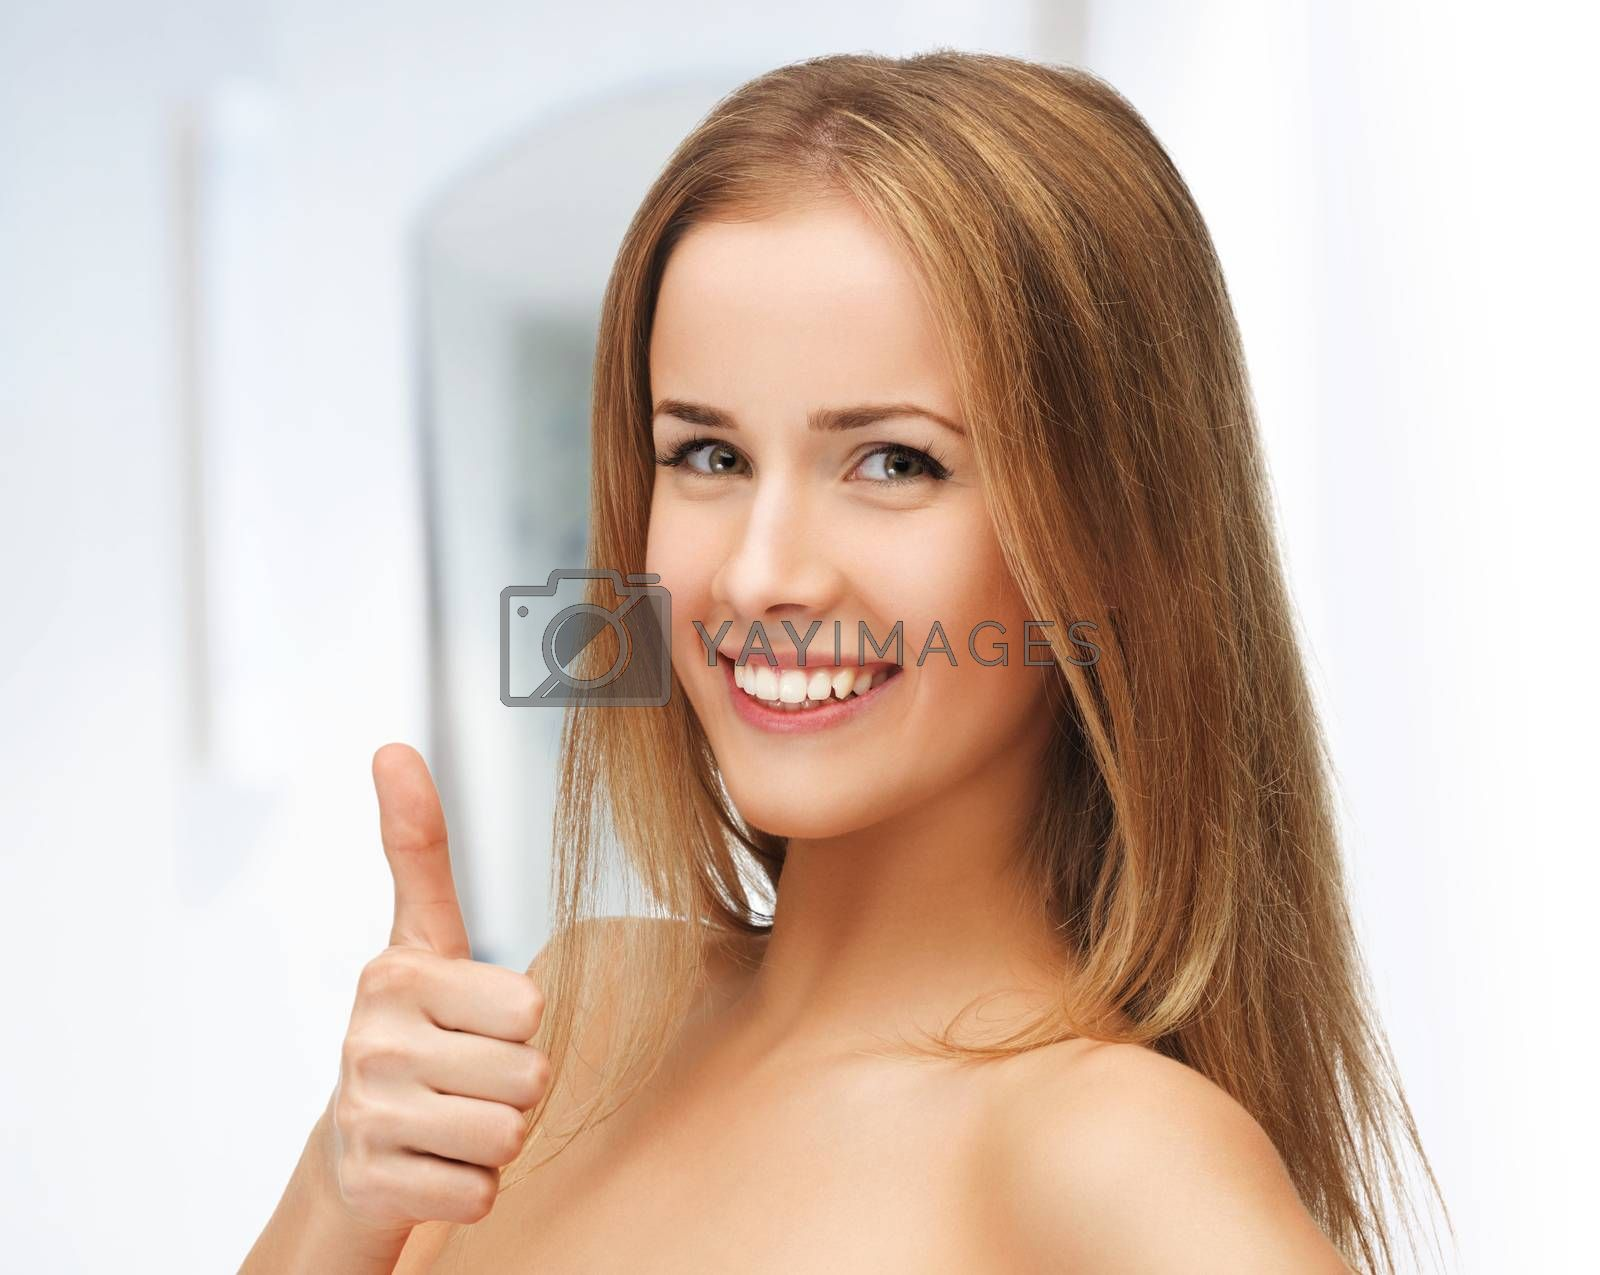 beautiful woman showing thumbs up by dolgachov